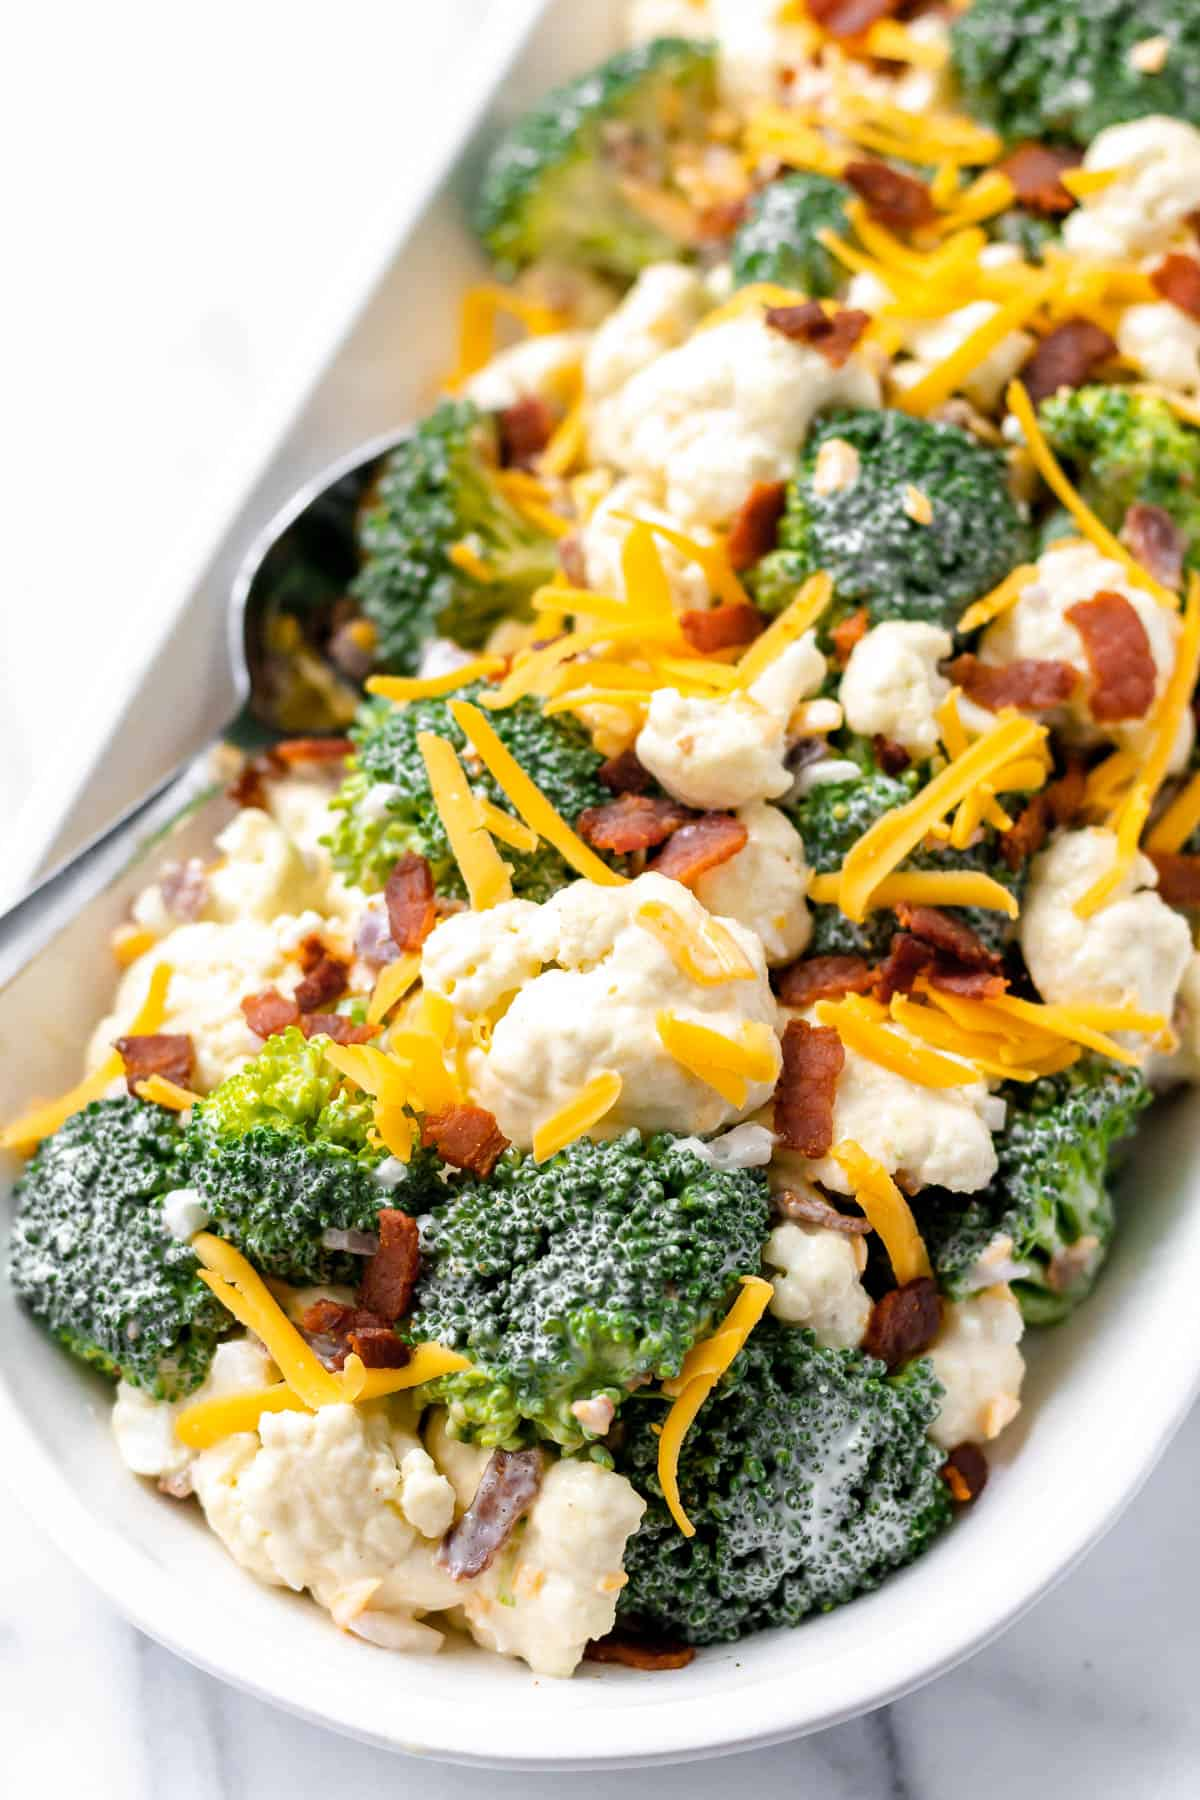 Close up of amish broccoli salad in an oval serving dish with a spoon